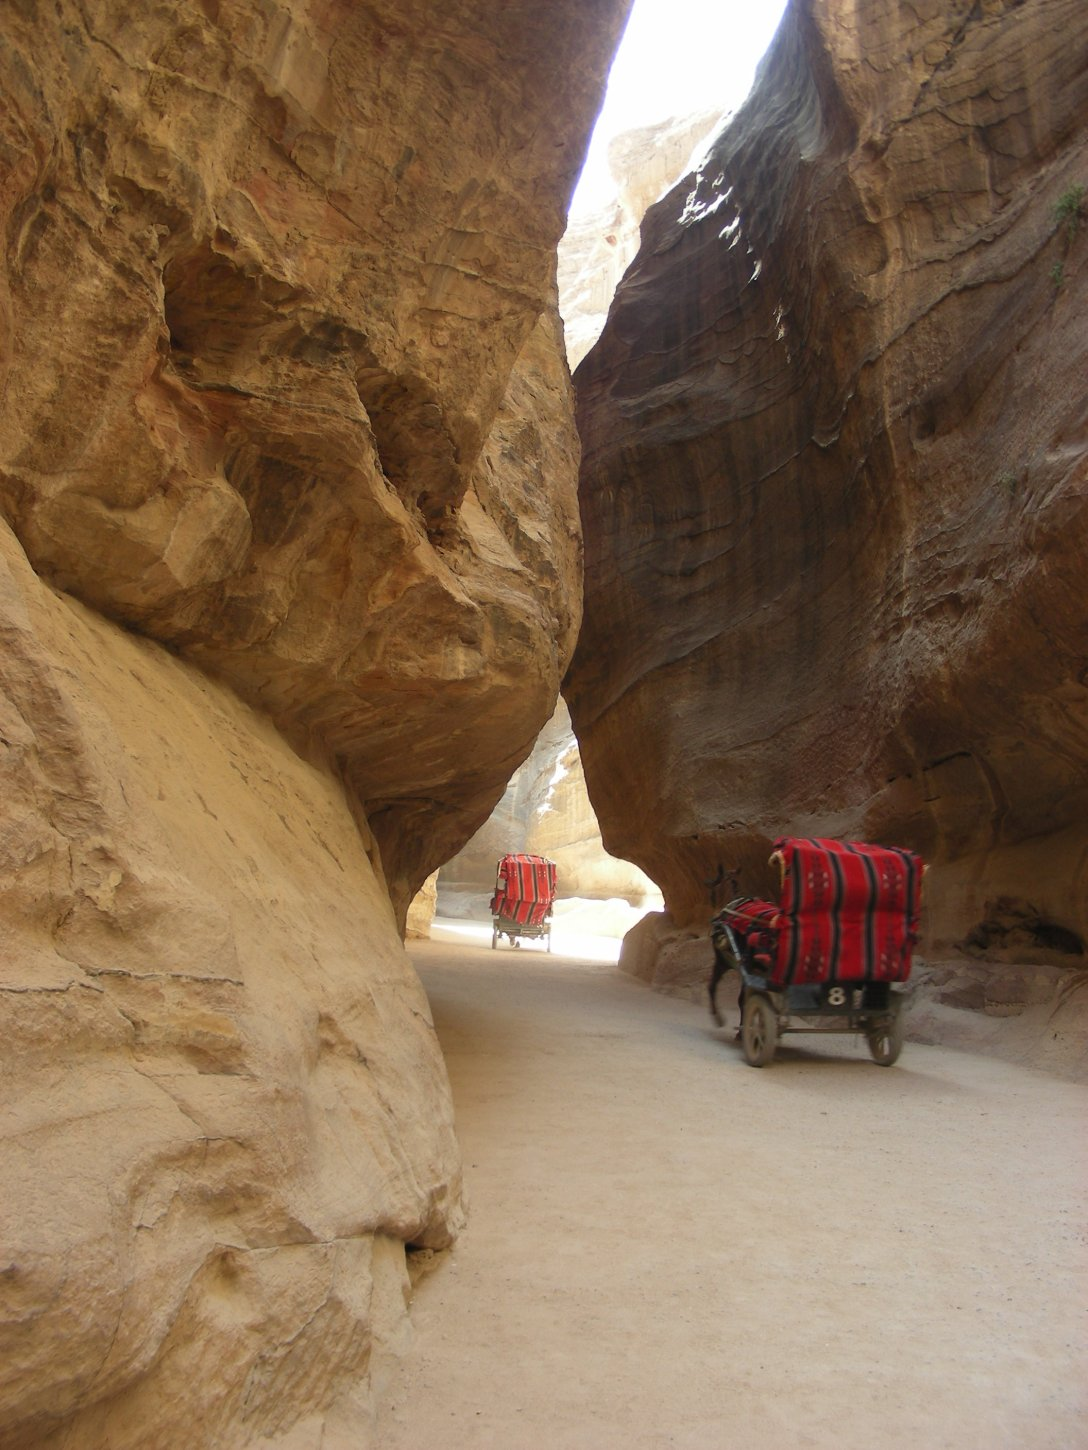 The carriages at Petra are in great demand by visitors